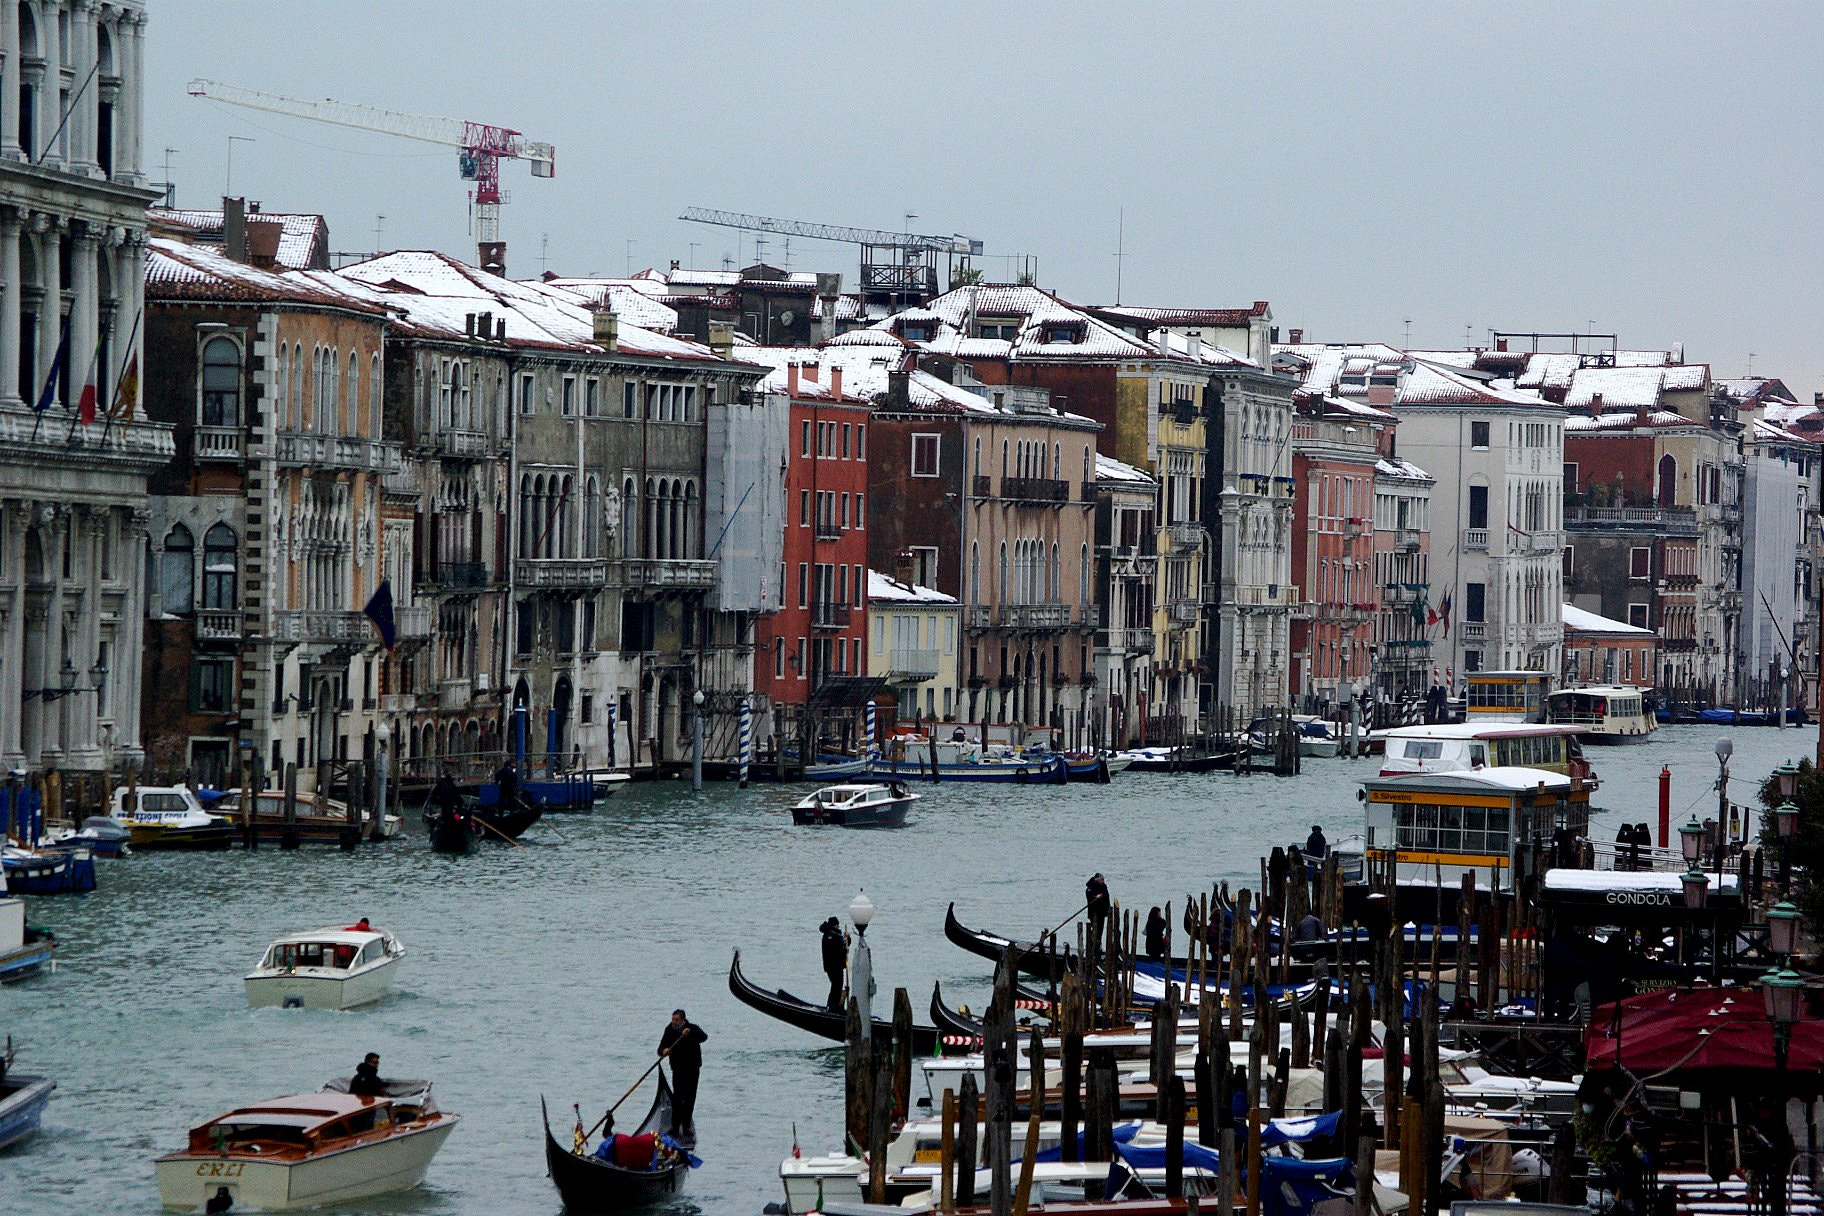 Photograph Venice in the Snow by Bob Riach on 500px